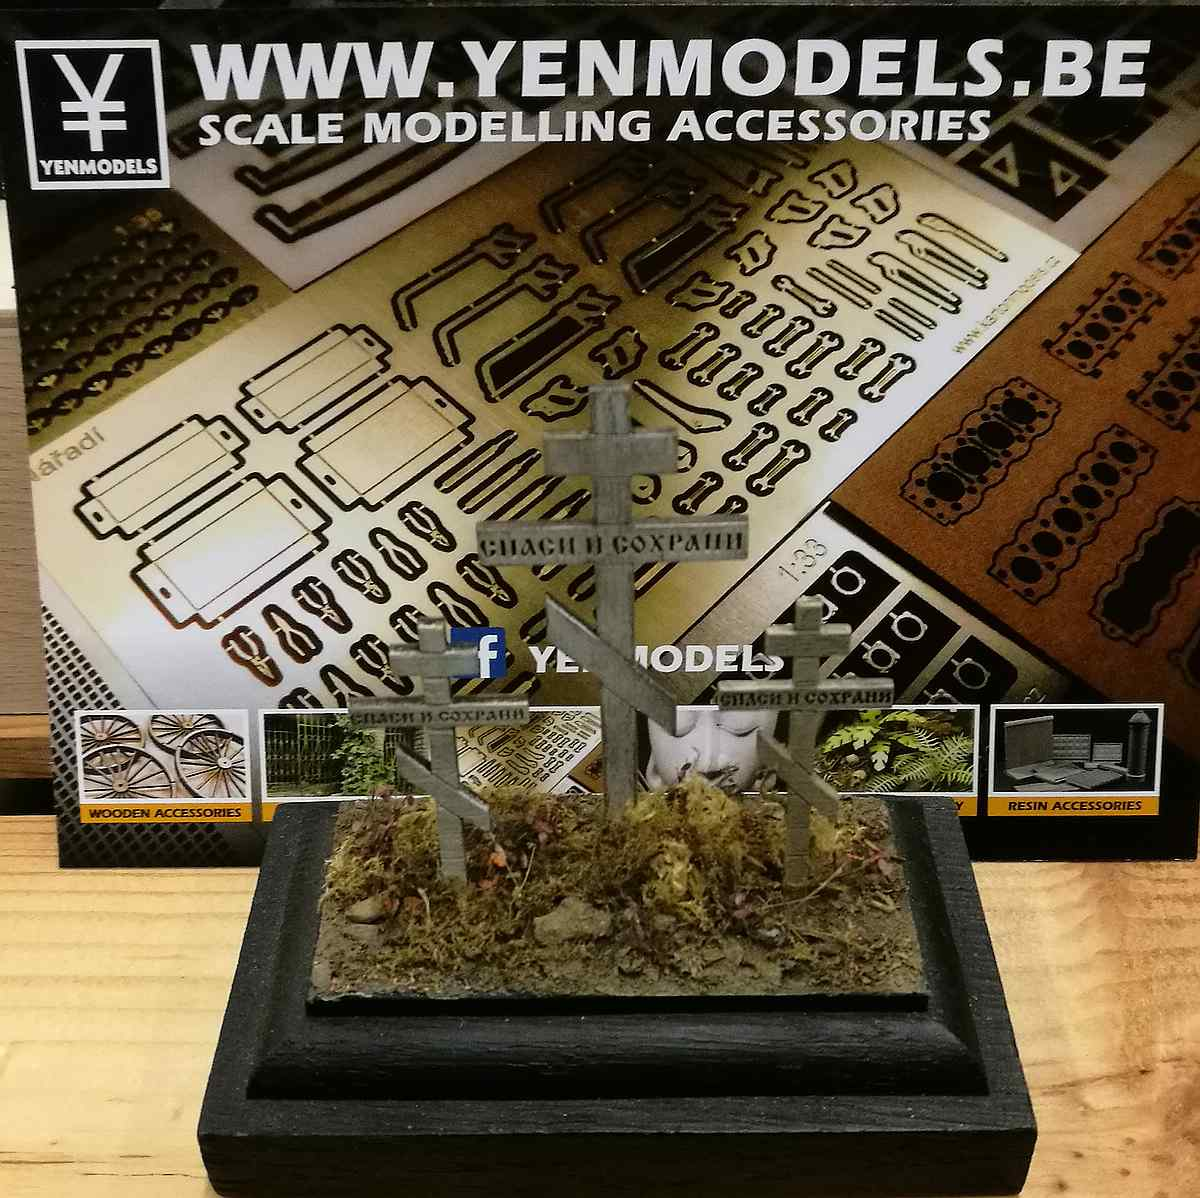 YenModels-YML-35005-Orthodox-Russian-Crosses-1 Orthodox Russian Crosses im Maßstab 1:35 von YenModels YML 35005